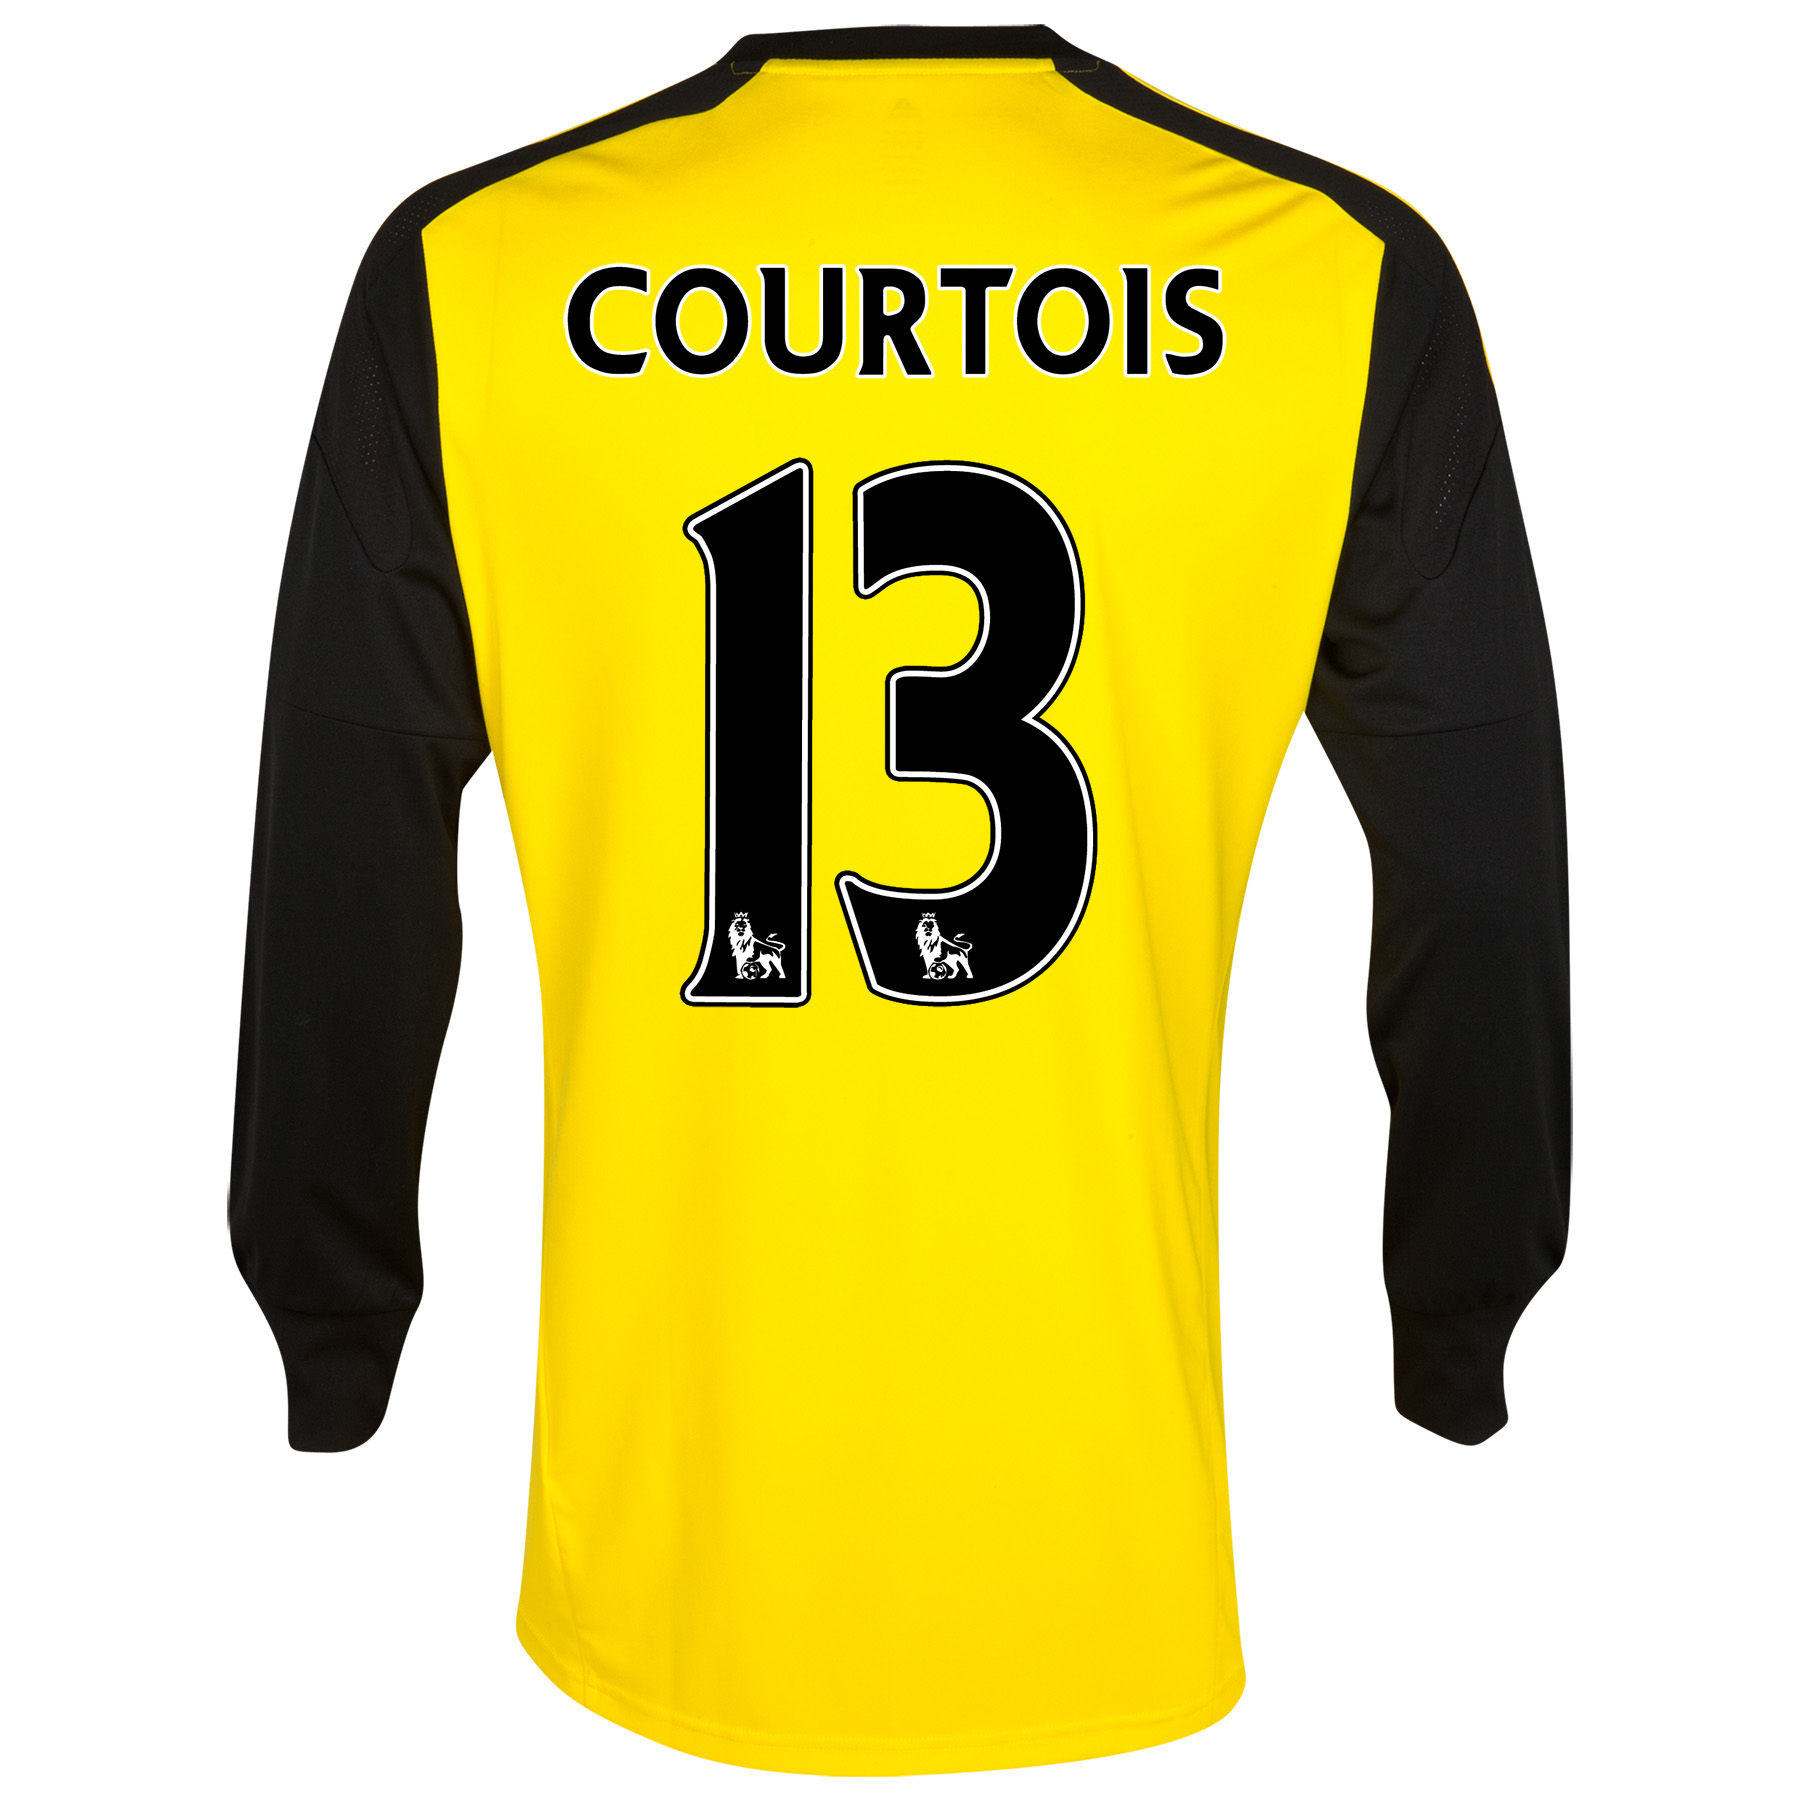 Chelsea Home Goalkeeper Shirt 2013/14 with Courtois 13 printing